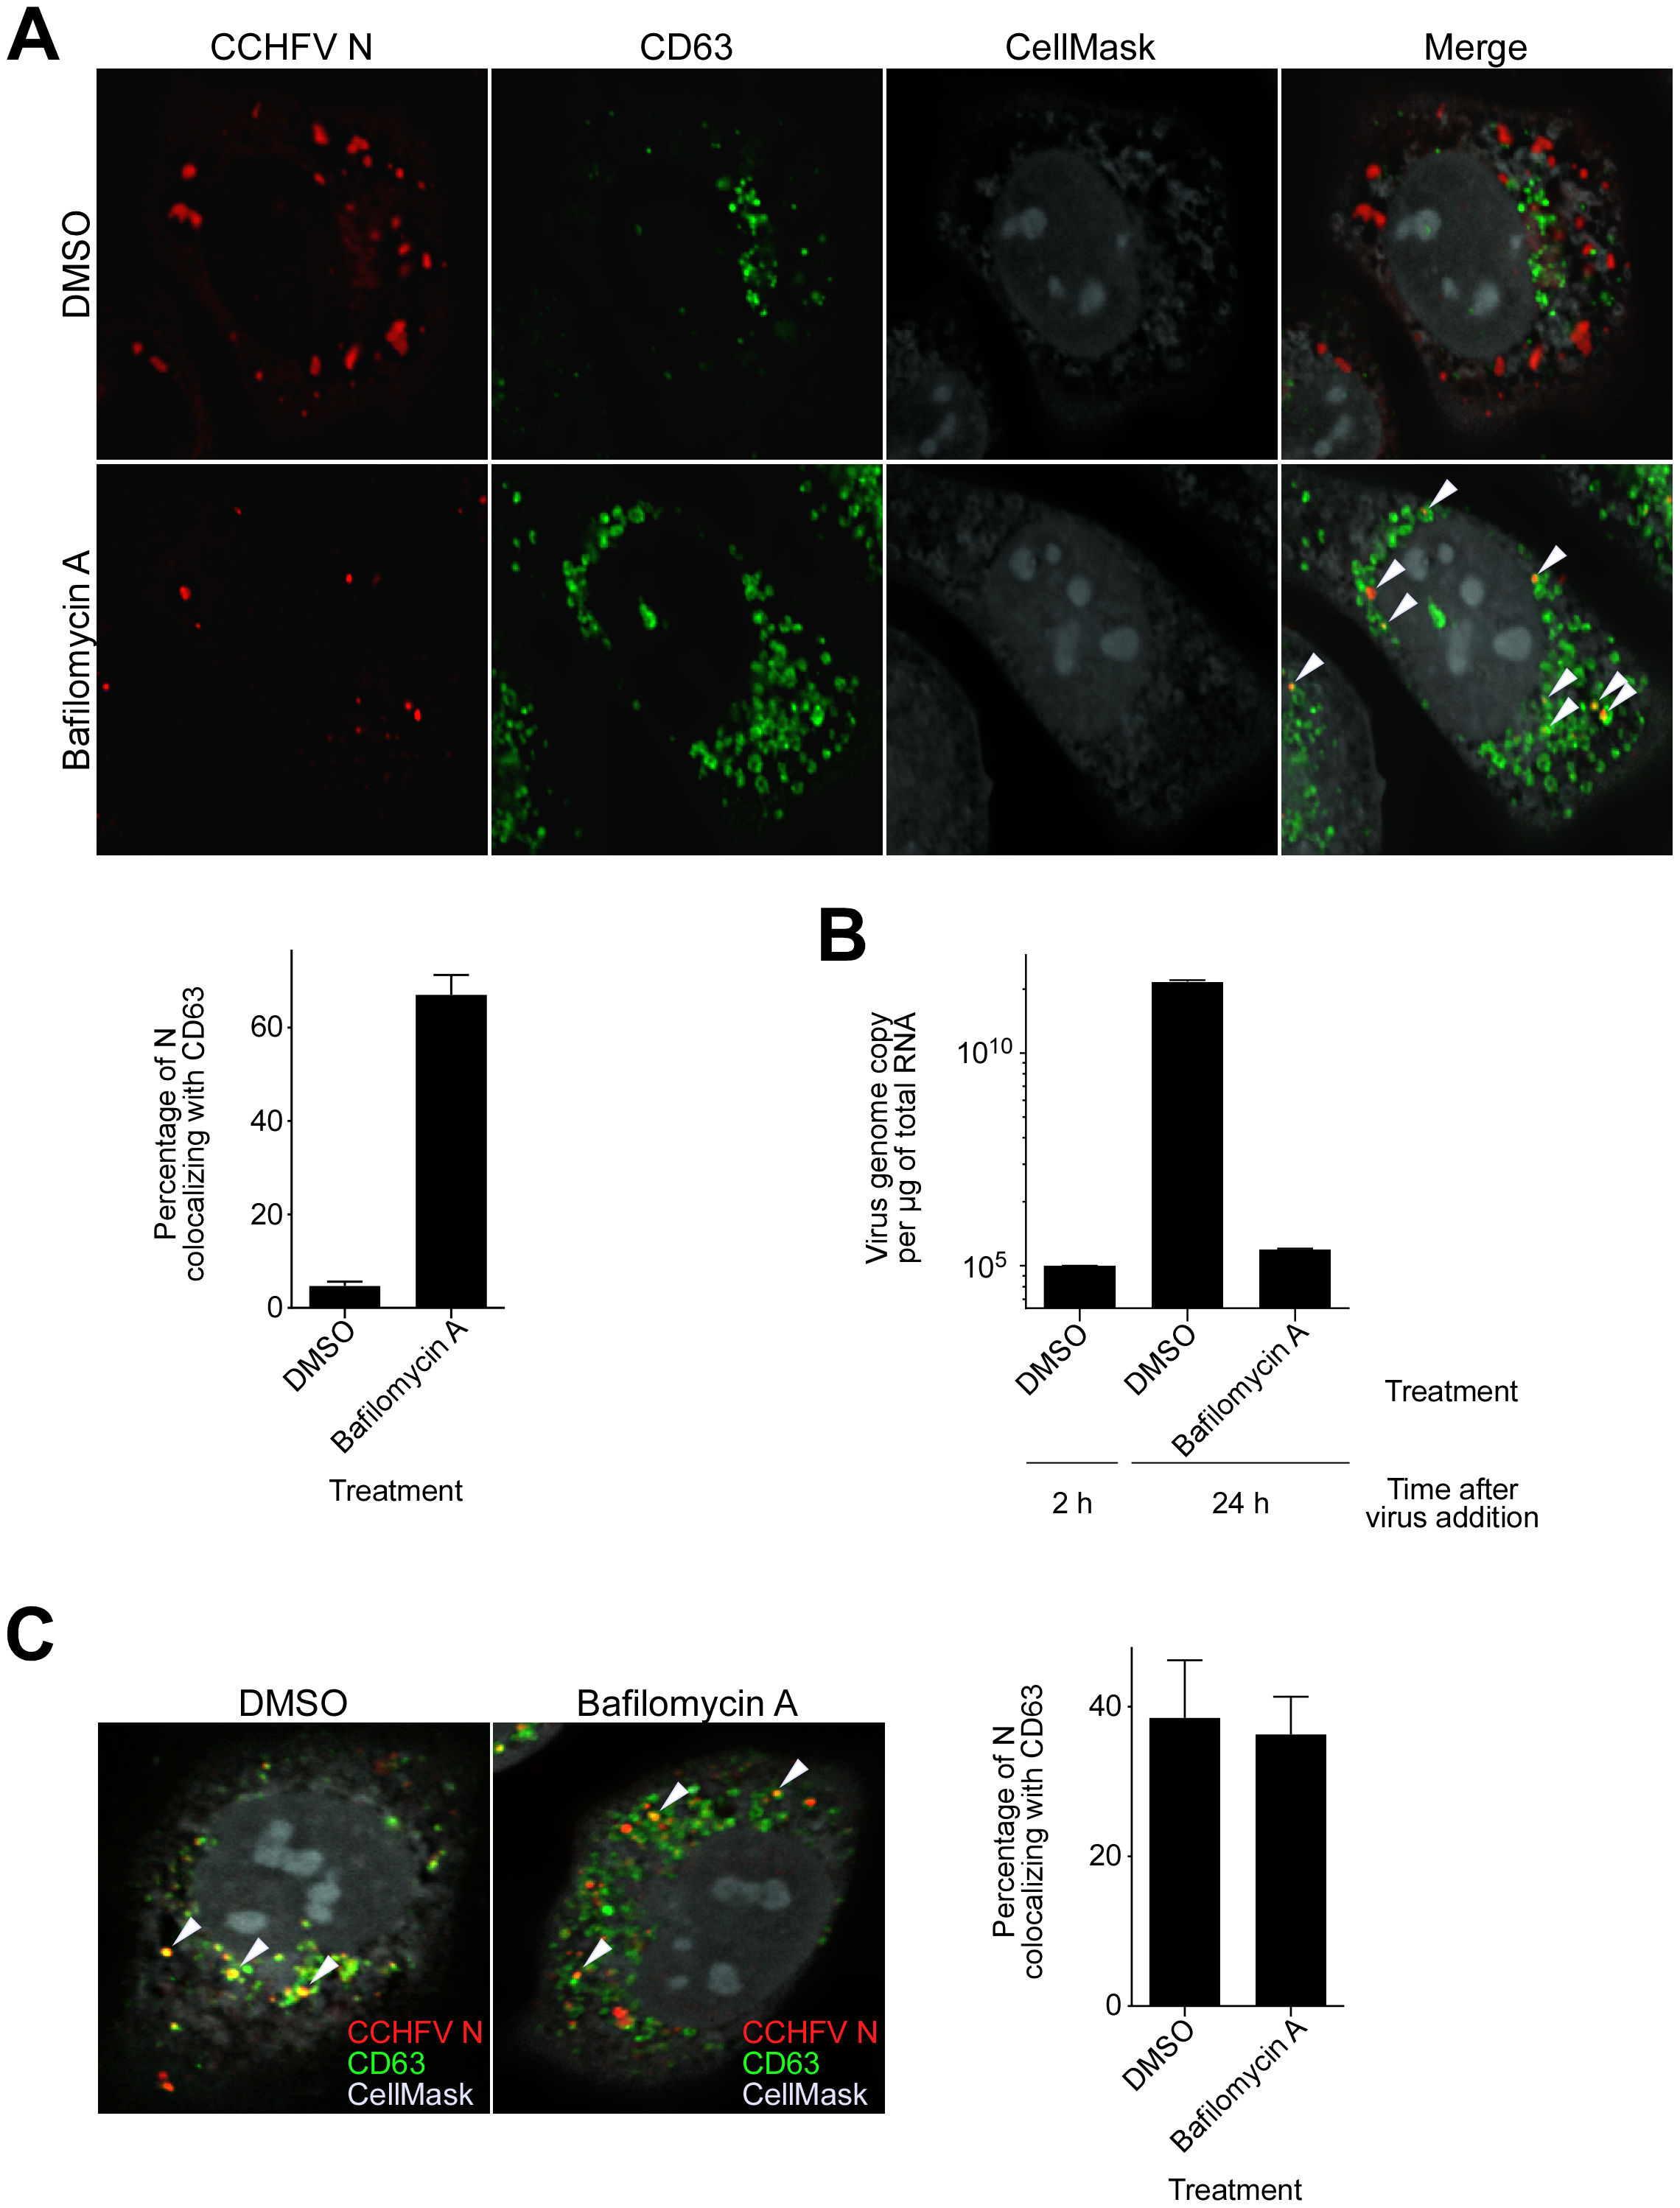 Bafilomycin A treatment results in accumulation of CCHFV in MVBs and blocks virus replication.